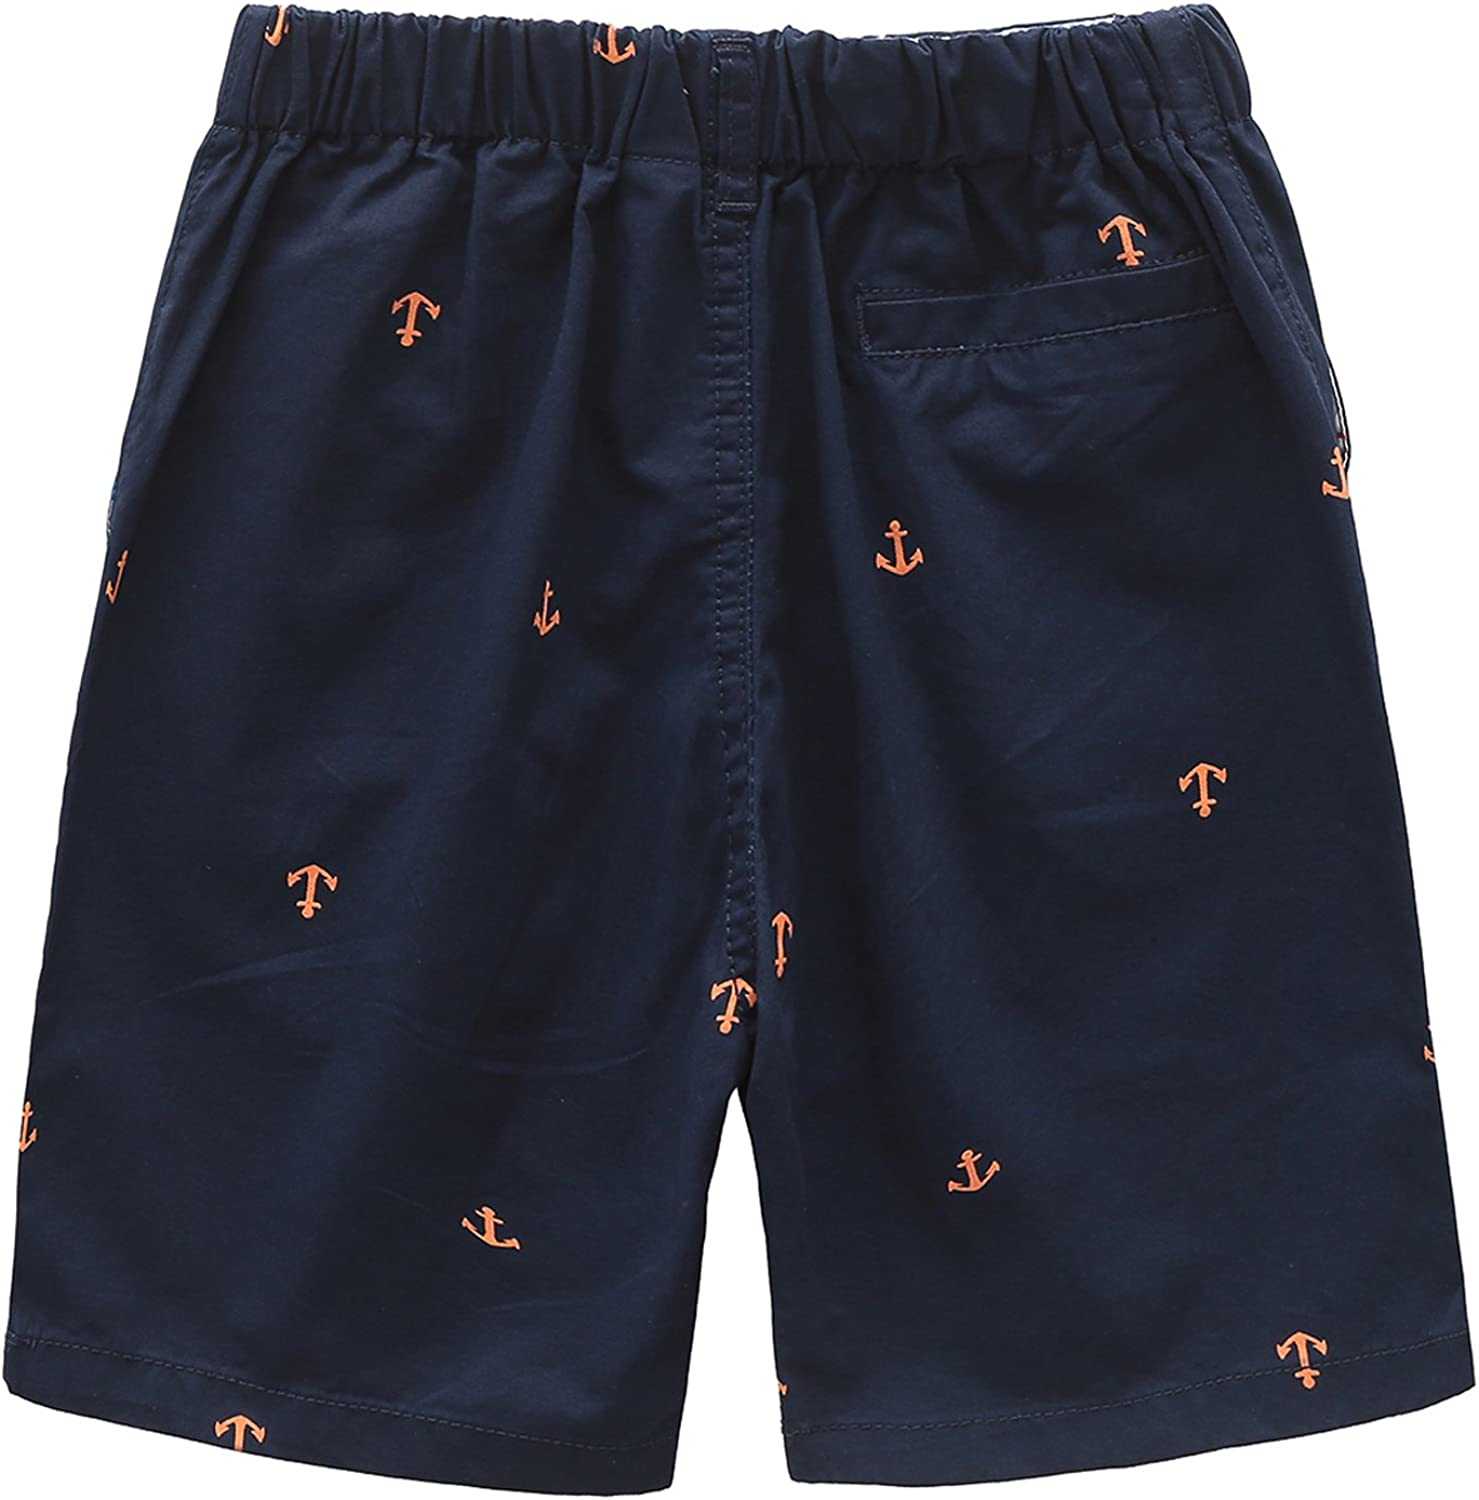 Grandwish Boys Printed Cargo Shorts Thin Style 3-8 Years